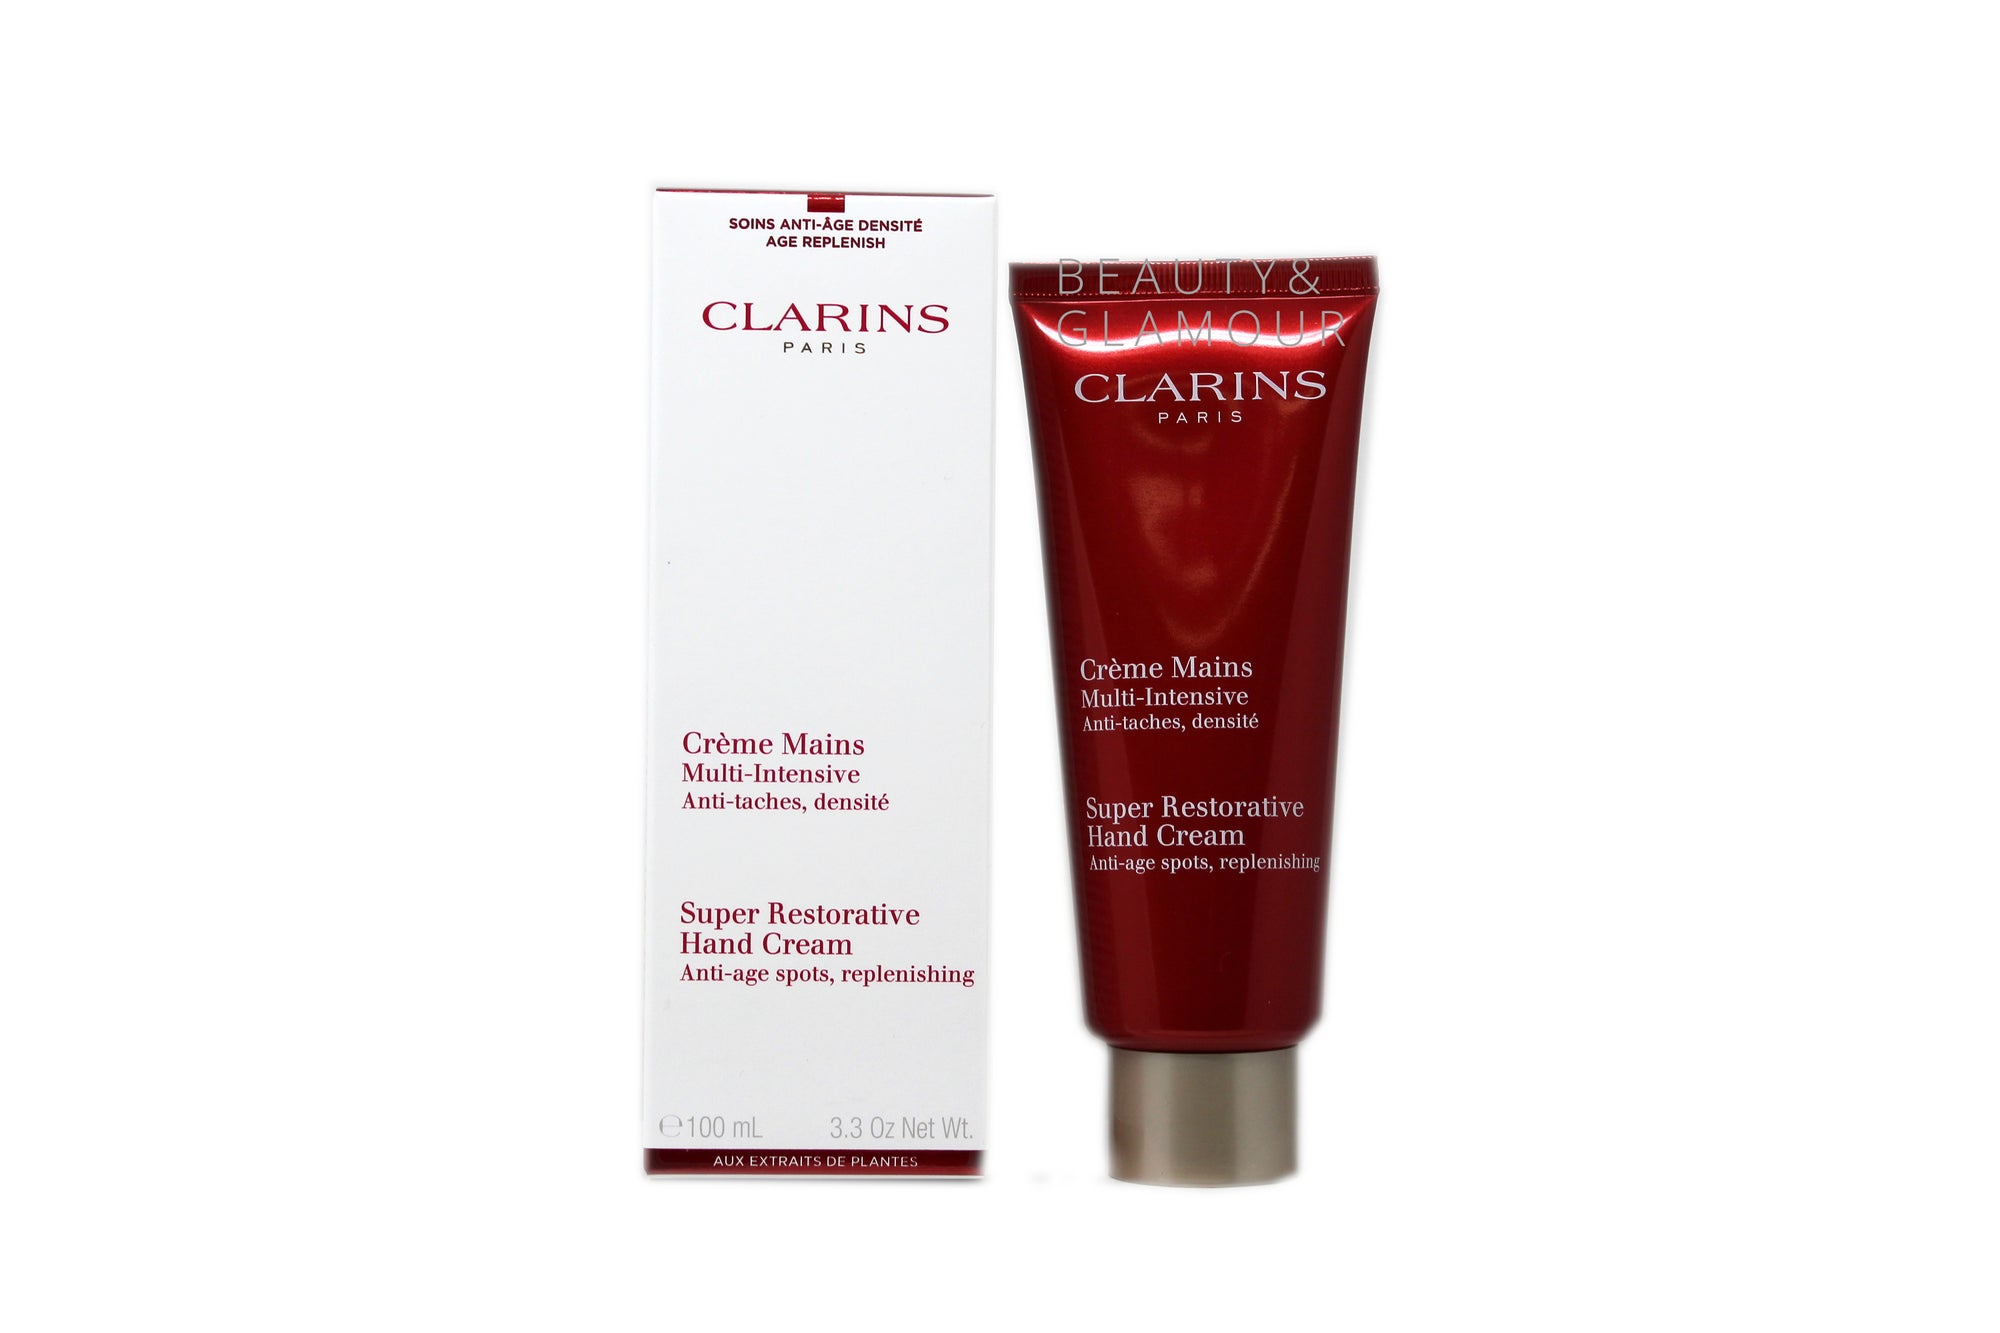 CLARINS SUPER RESTORATIVE HAND CREAM ALL SKIN TYPES